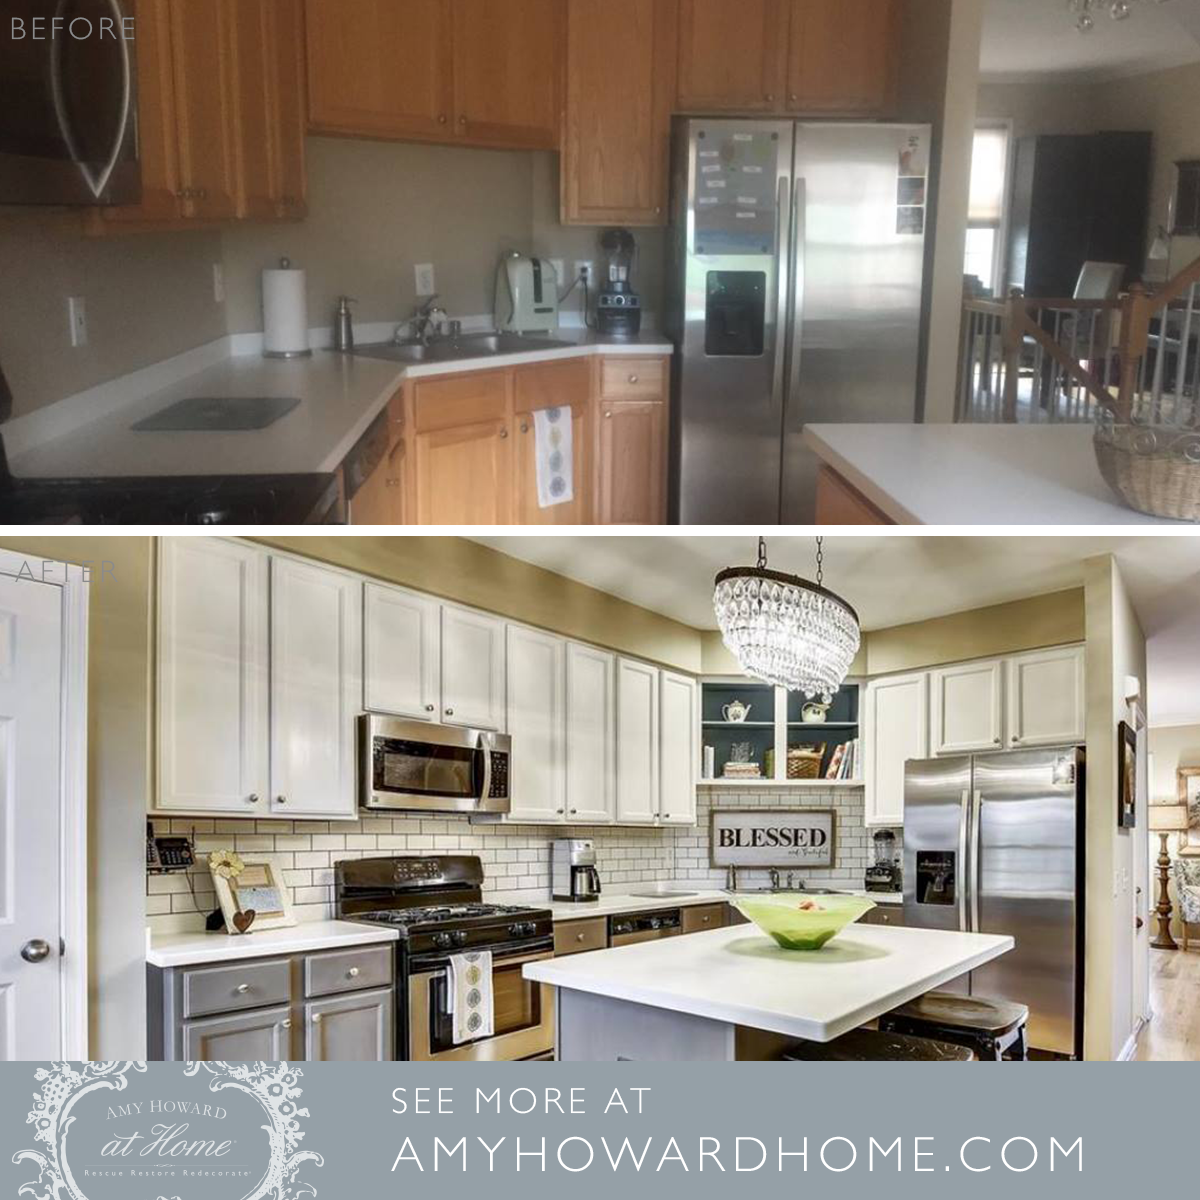 This Kitchen Makeover Helped Her Sell A House Realtors Told Us The Kitchen Was Exceptional In Our Mark Refinishing Cabinets Cabinet Refinish Kitchen Cabinets